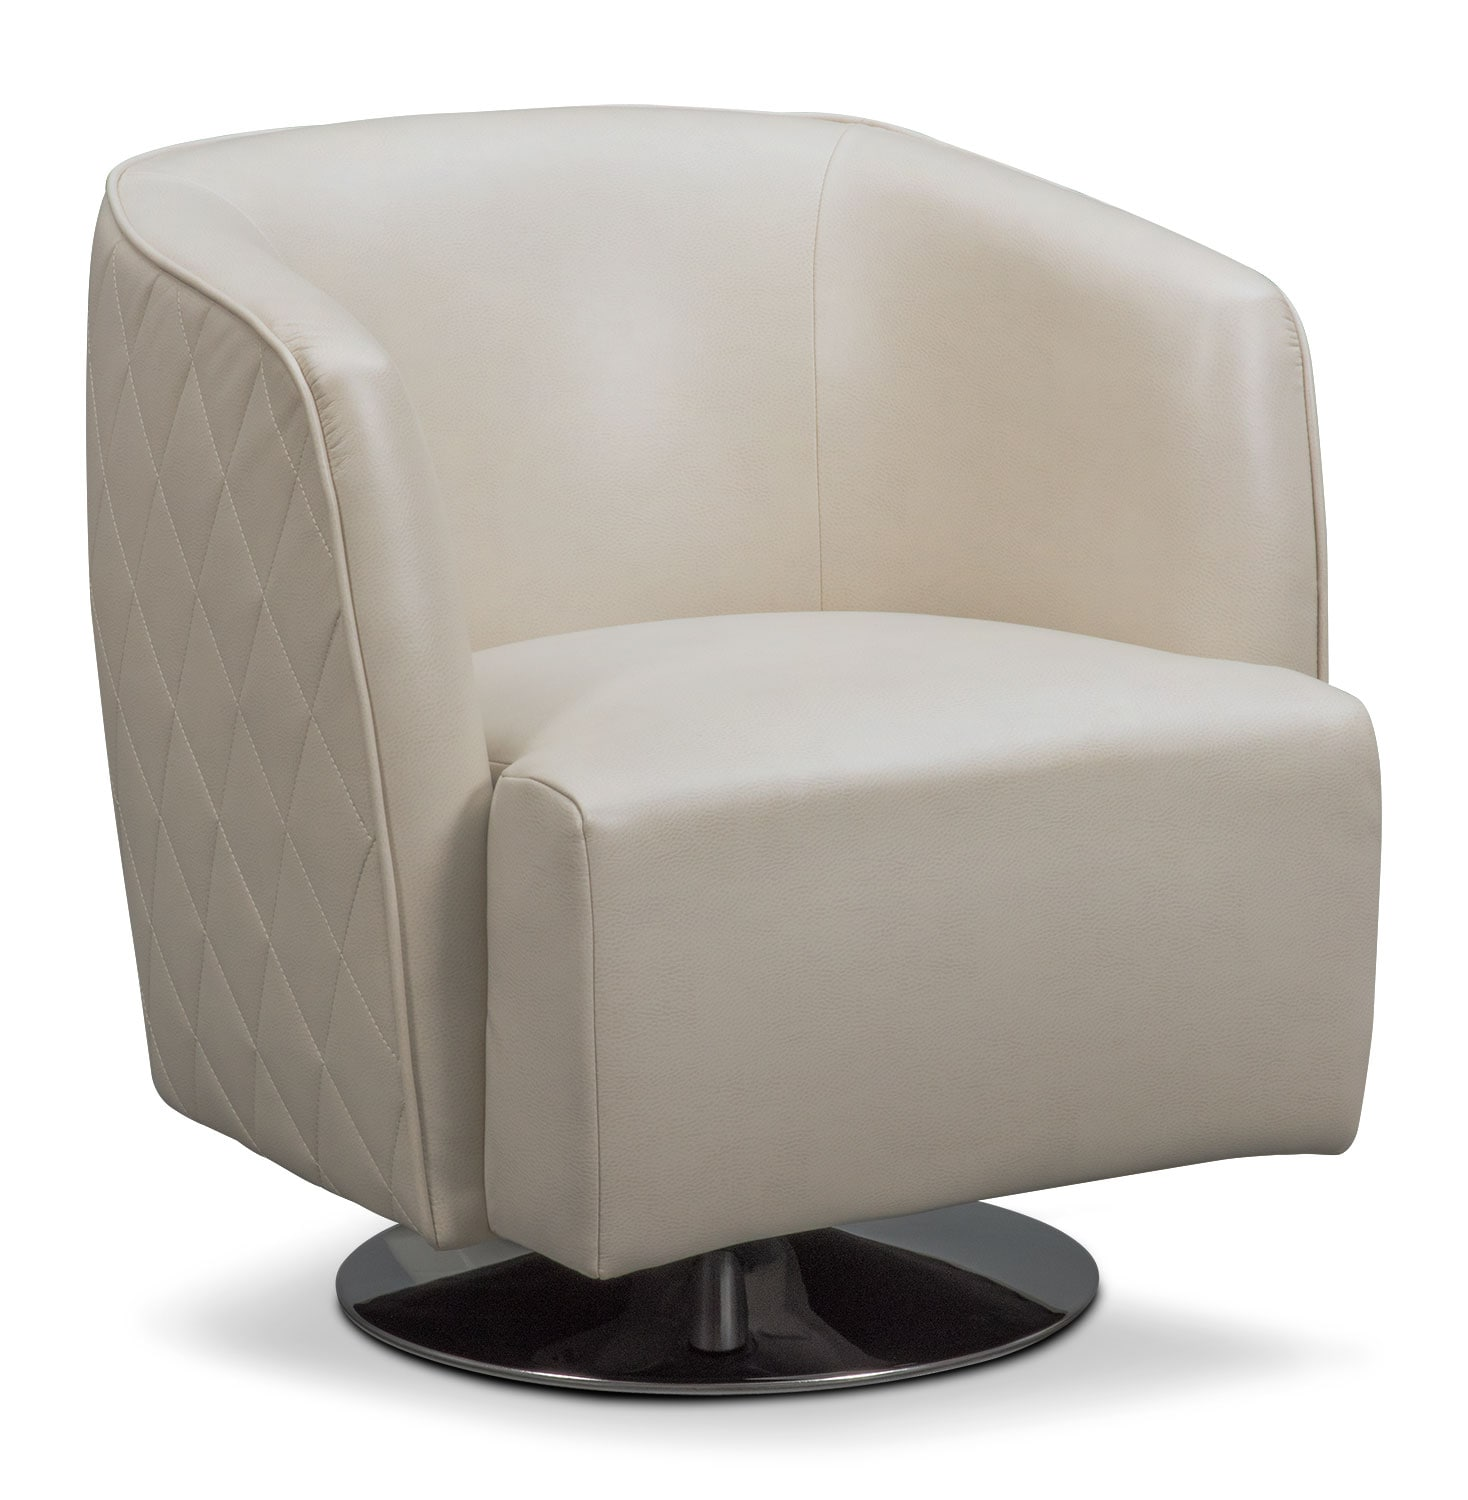 Living Room Furniture - Santana Swivel Chair - Ivory